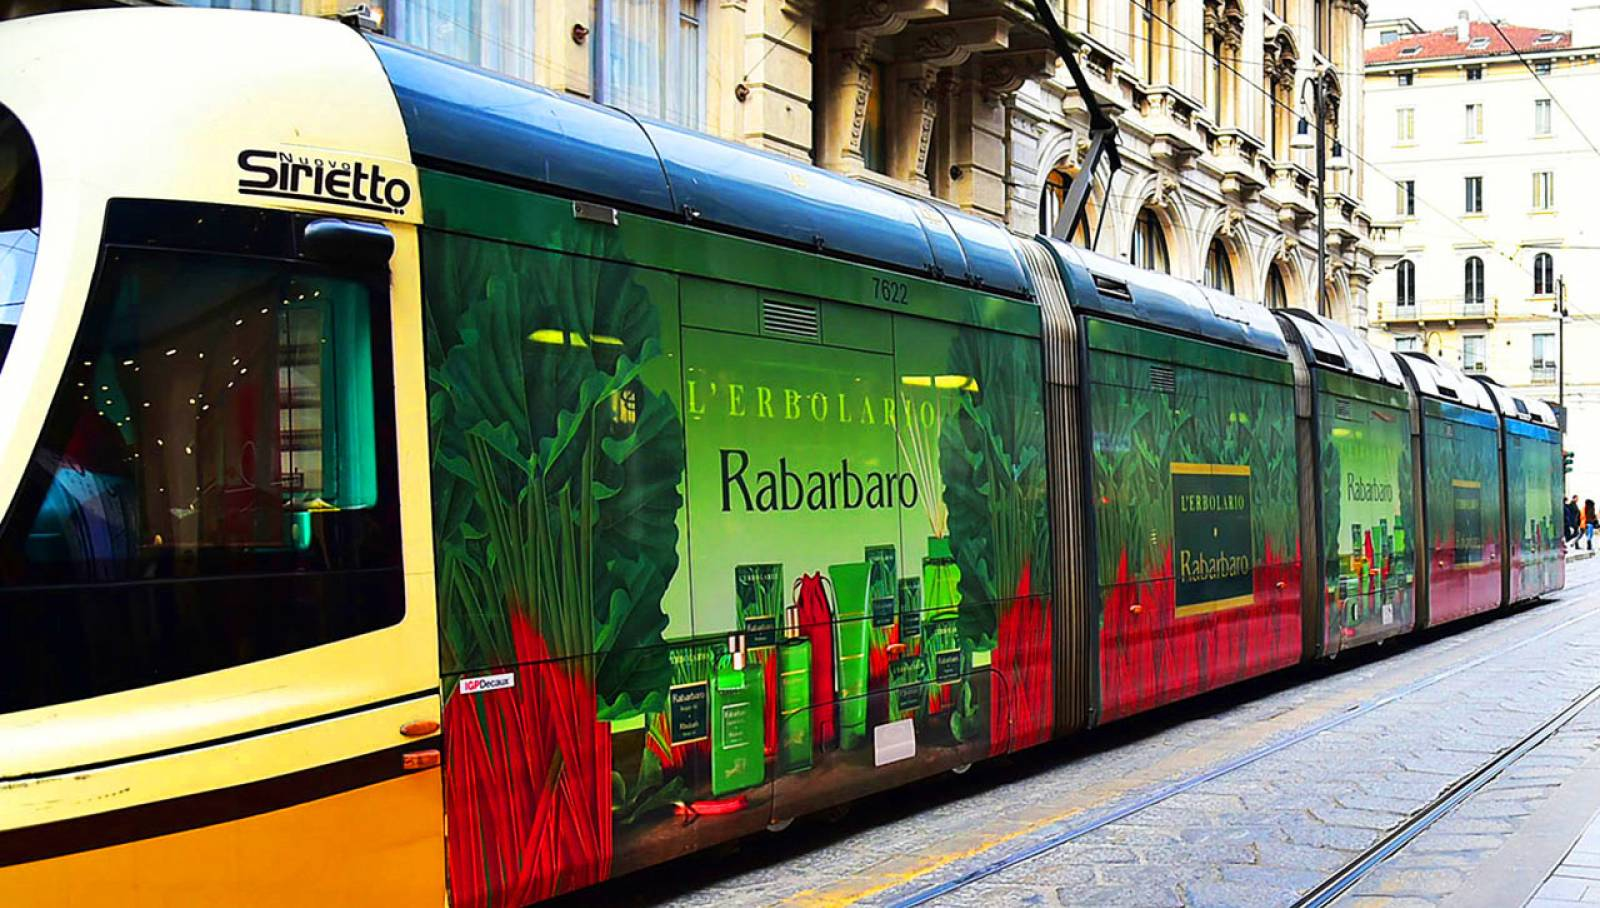 IGPDecaux Milan Wrapped Vehicles for L'Erbolario